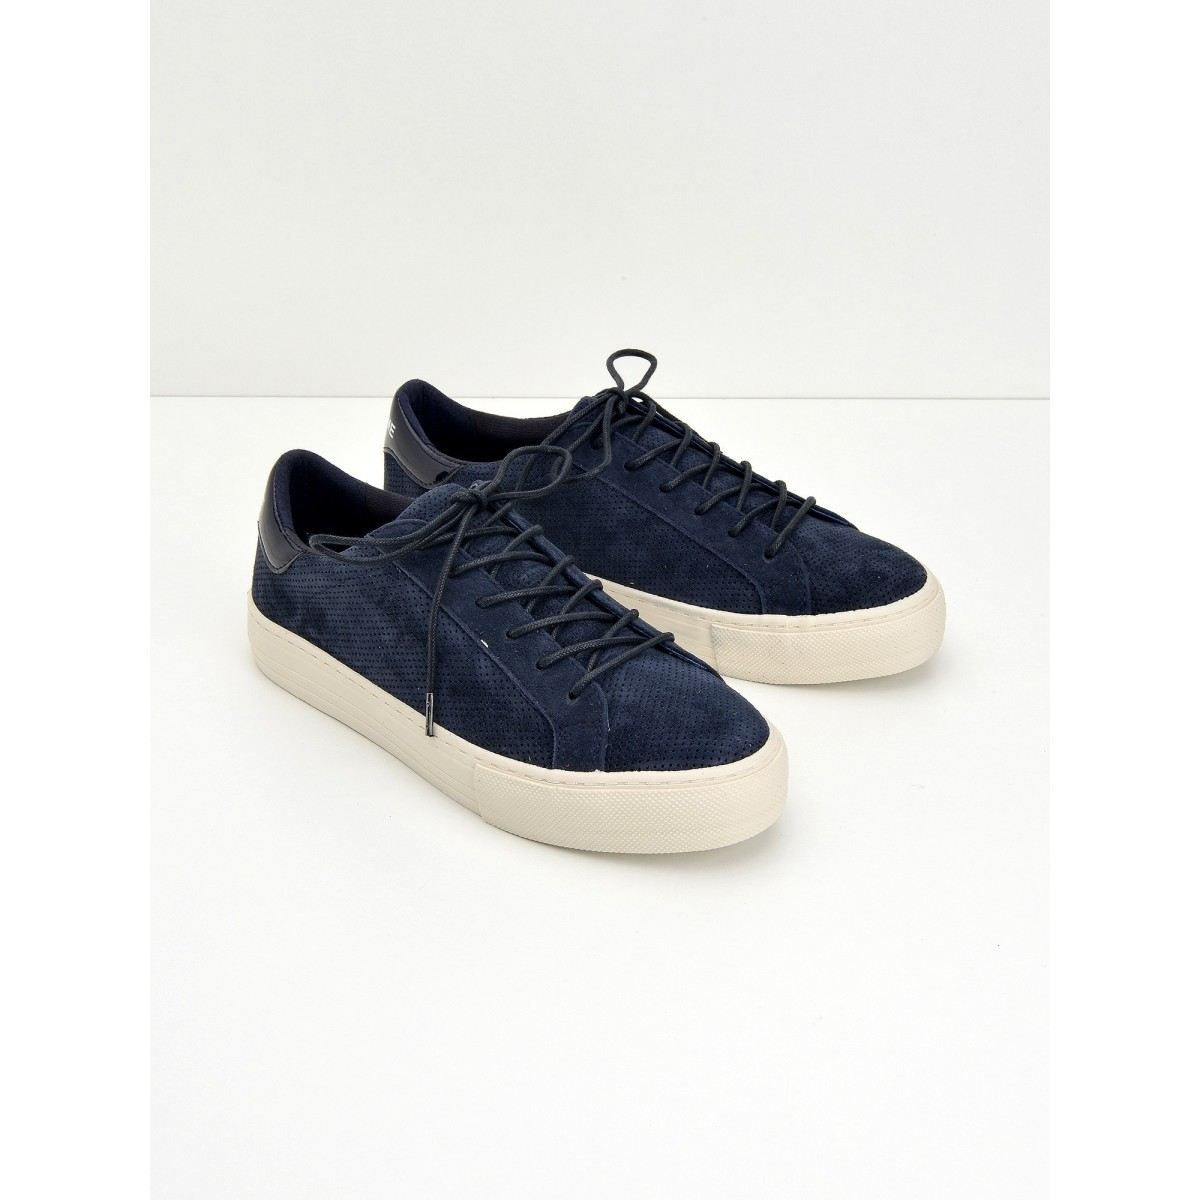 No Name Arcade Sneaker - Punch Goat Sued - Navy